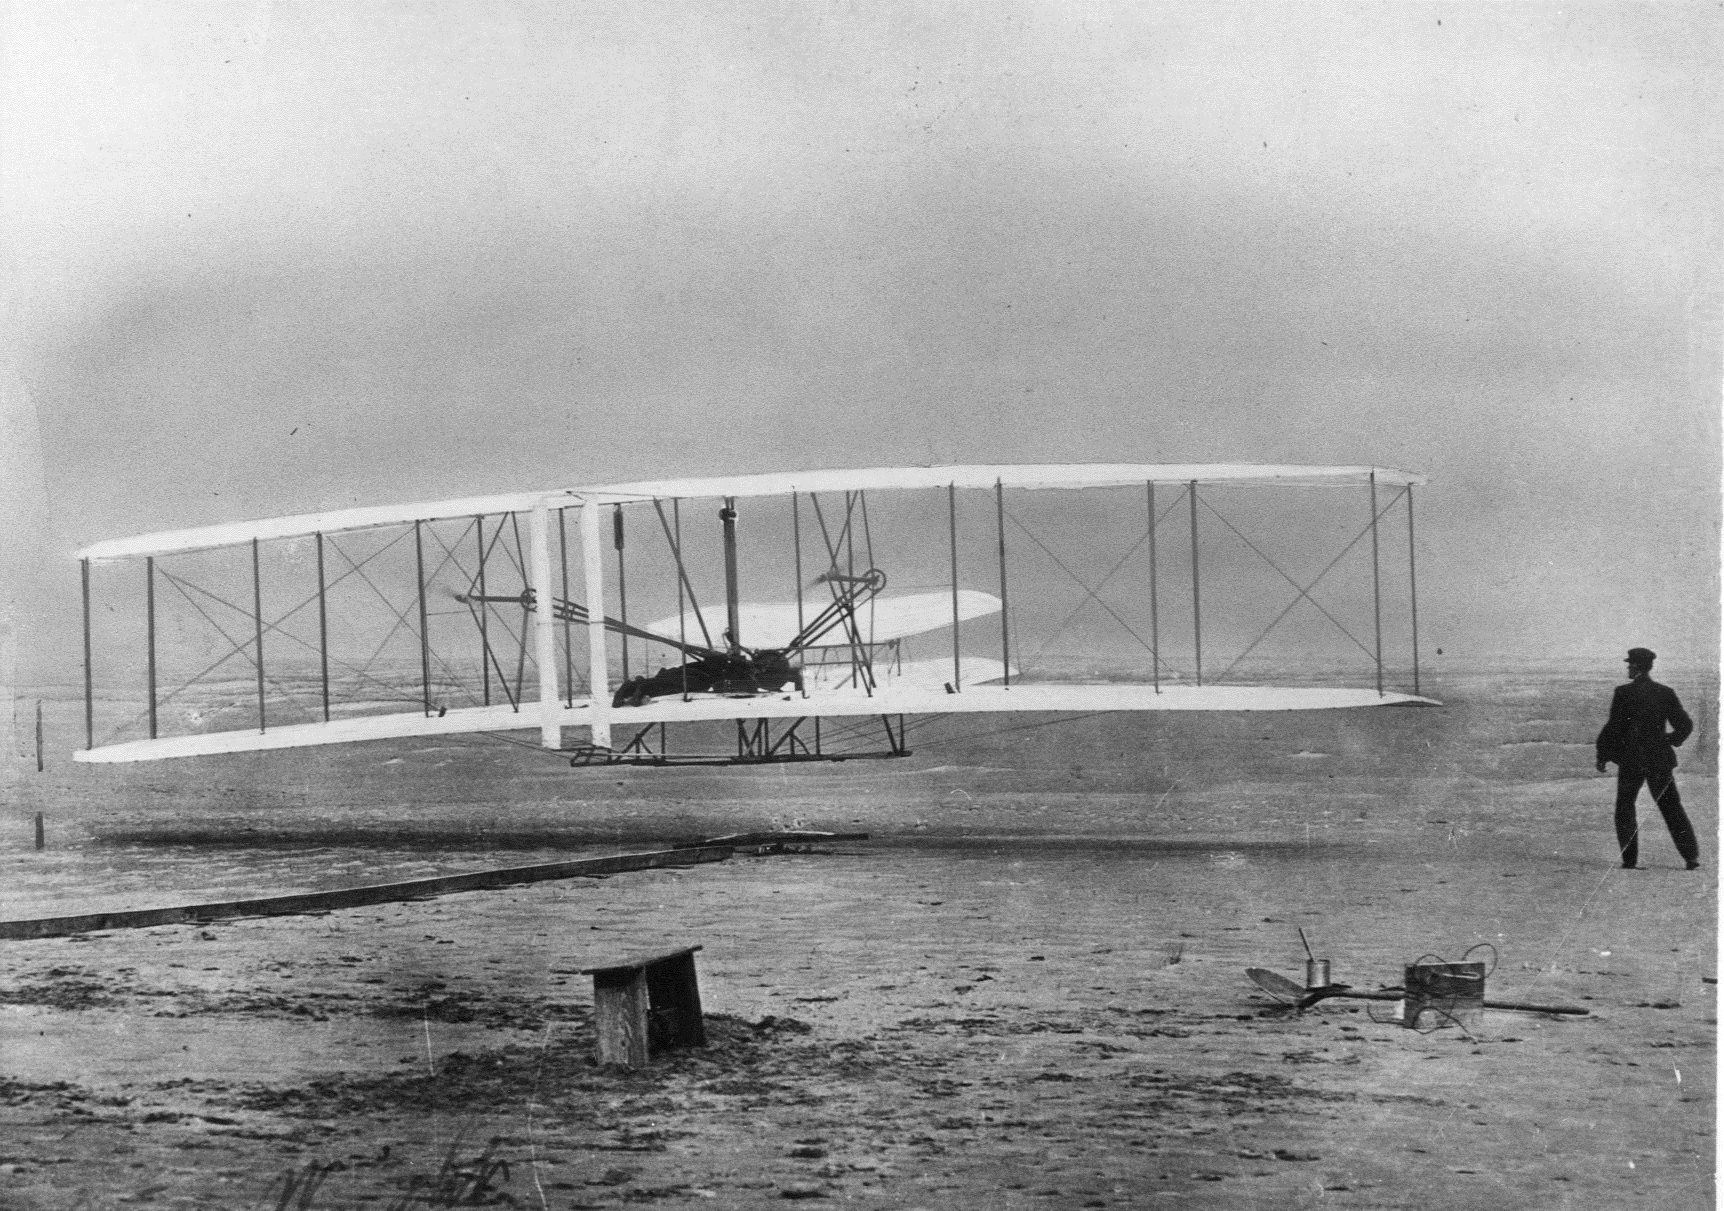 The Wright brothers made aviation history at Kitthyhawk, N.C., on Dec. 17, 1903.